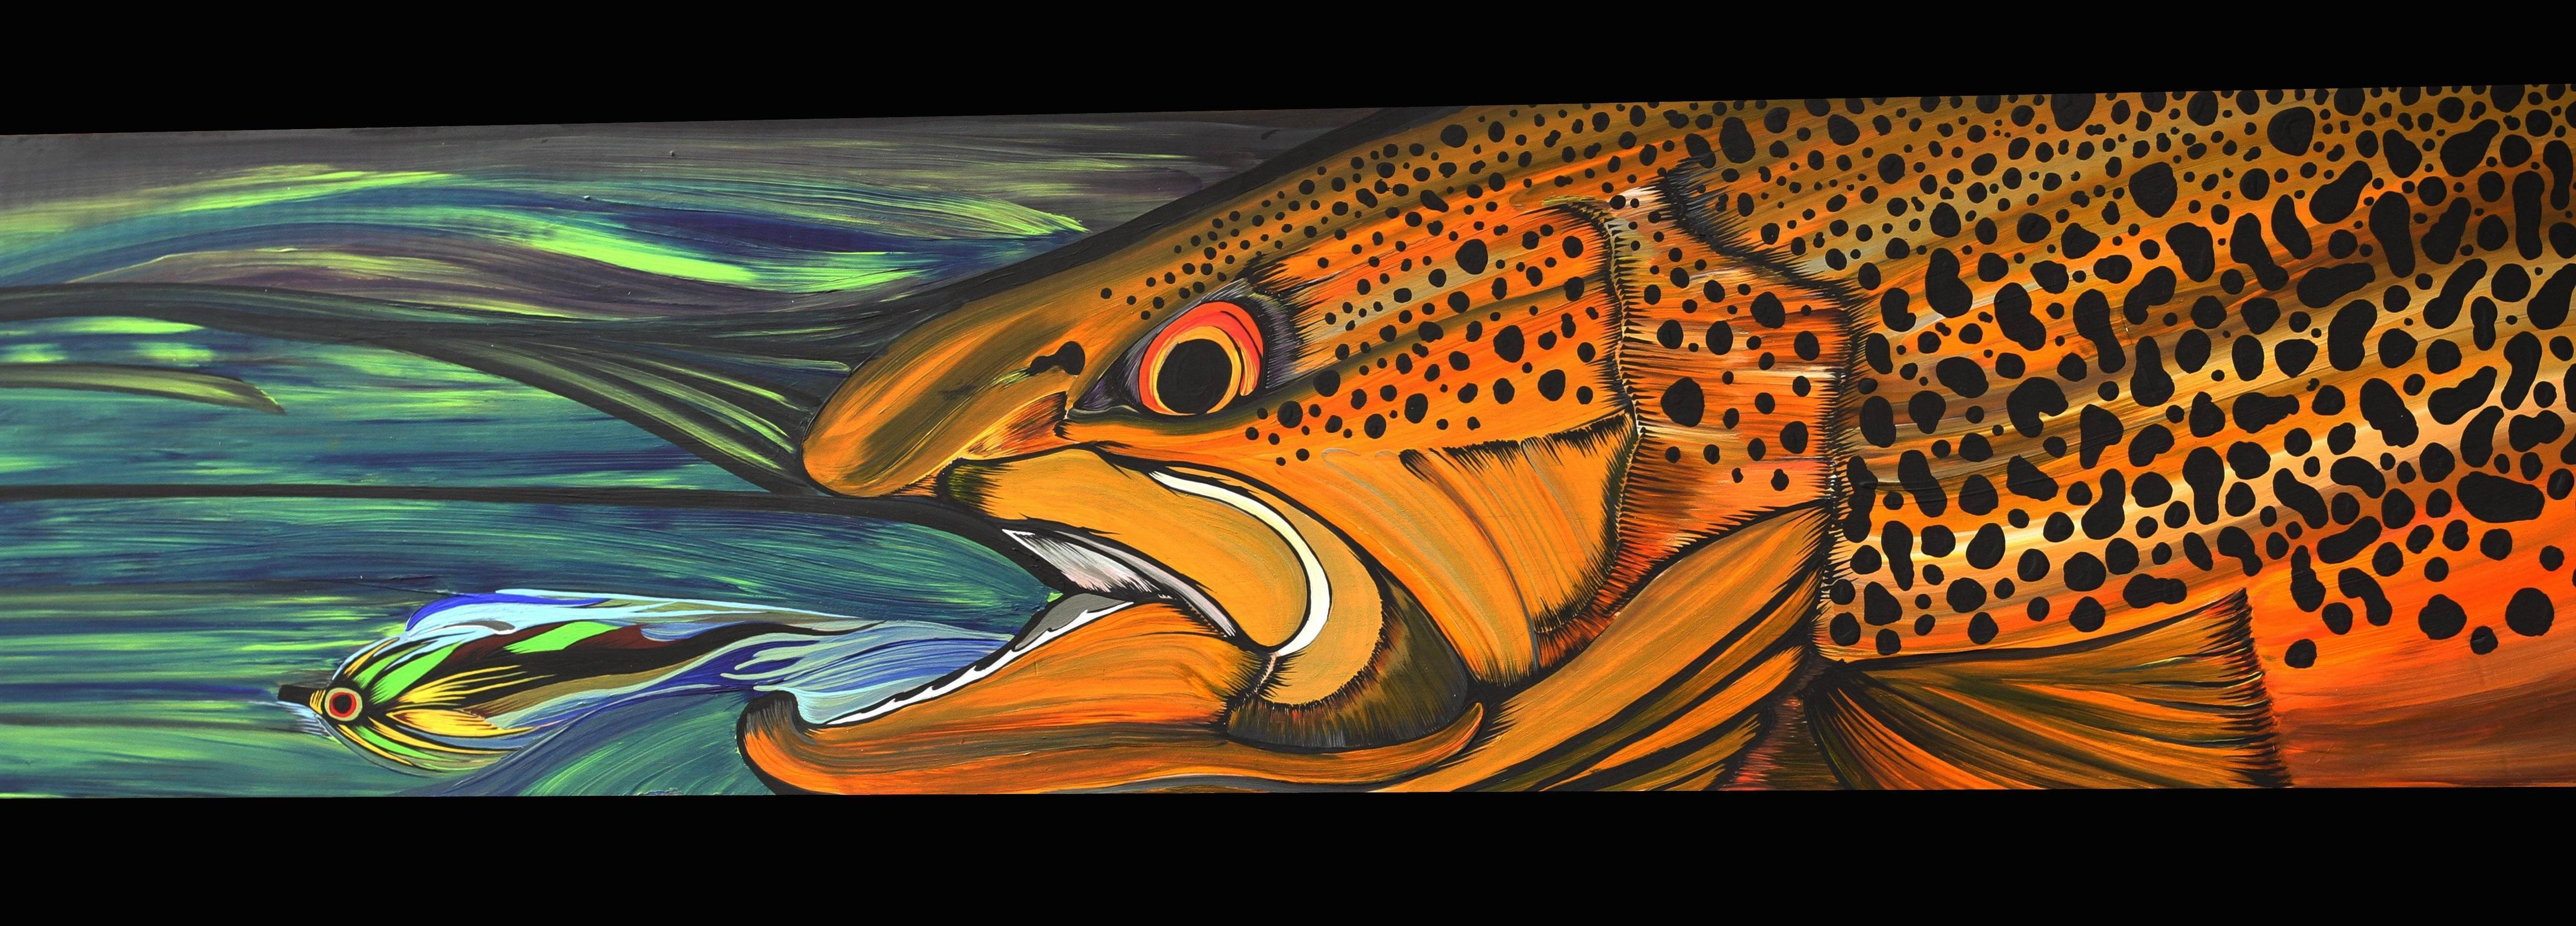 trout fly fishing wallpaper - photo #40